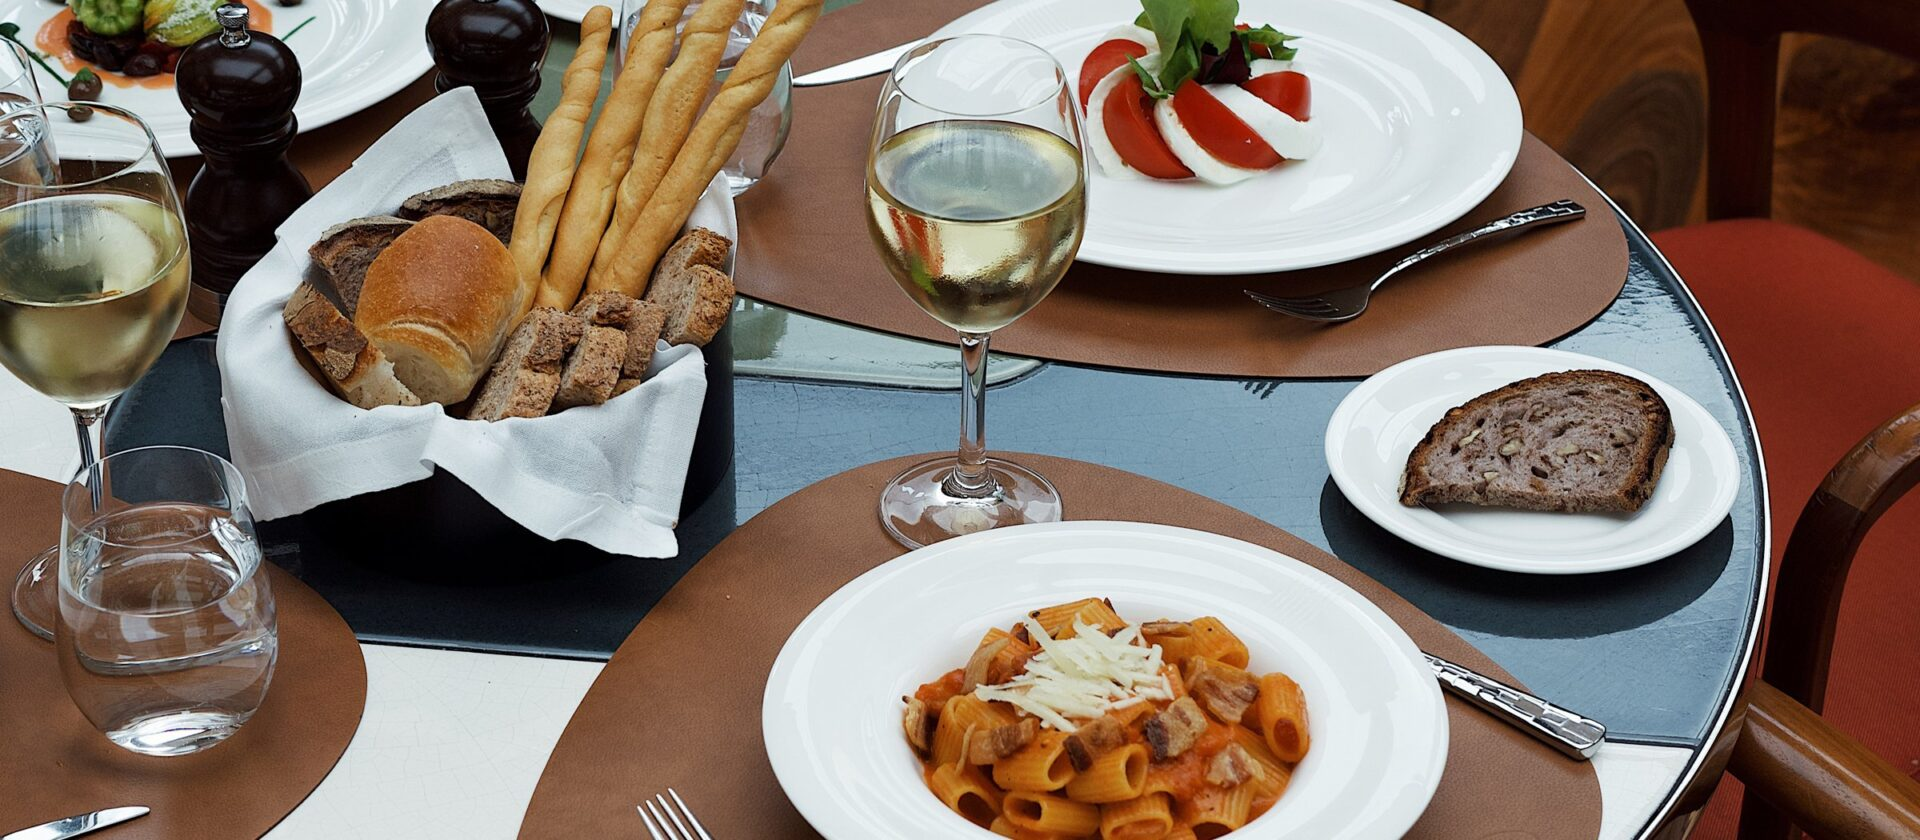 Milanese food on a table including pasta, bread and cheese dishes